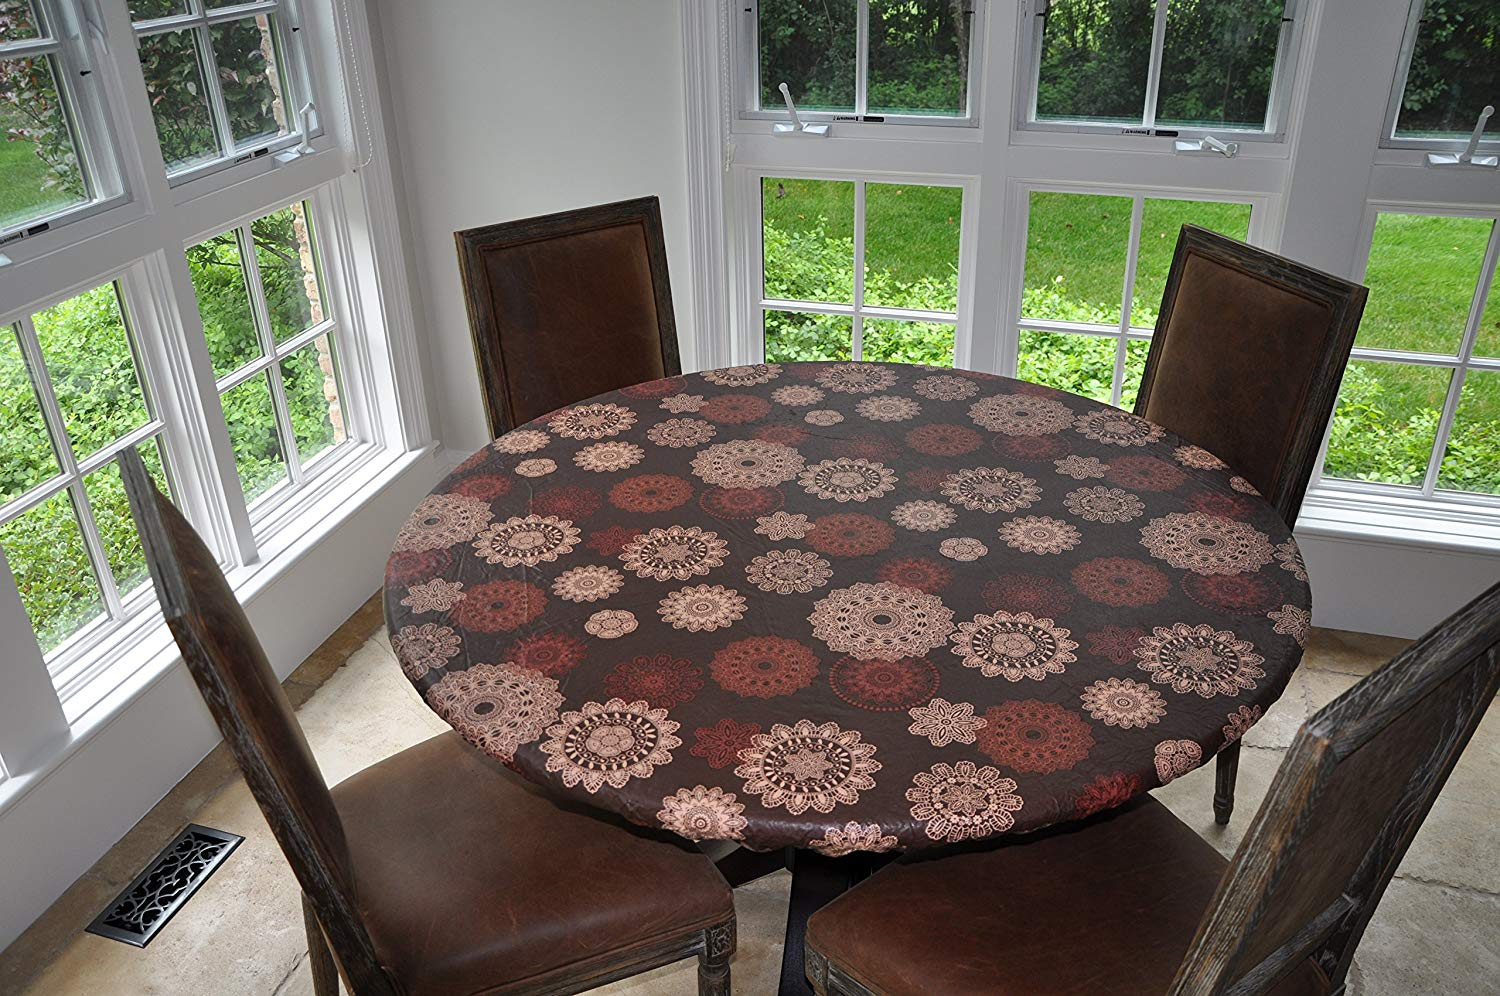 "Elastic Edged Flannel Backed Vinyl Fitted Table Cover - Medallion Pattern - Large Round - Fits Tables up to 45"" - 56"" Diameter"